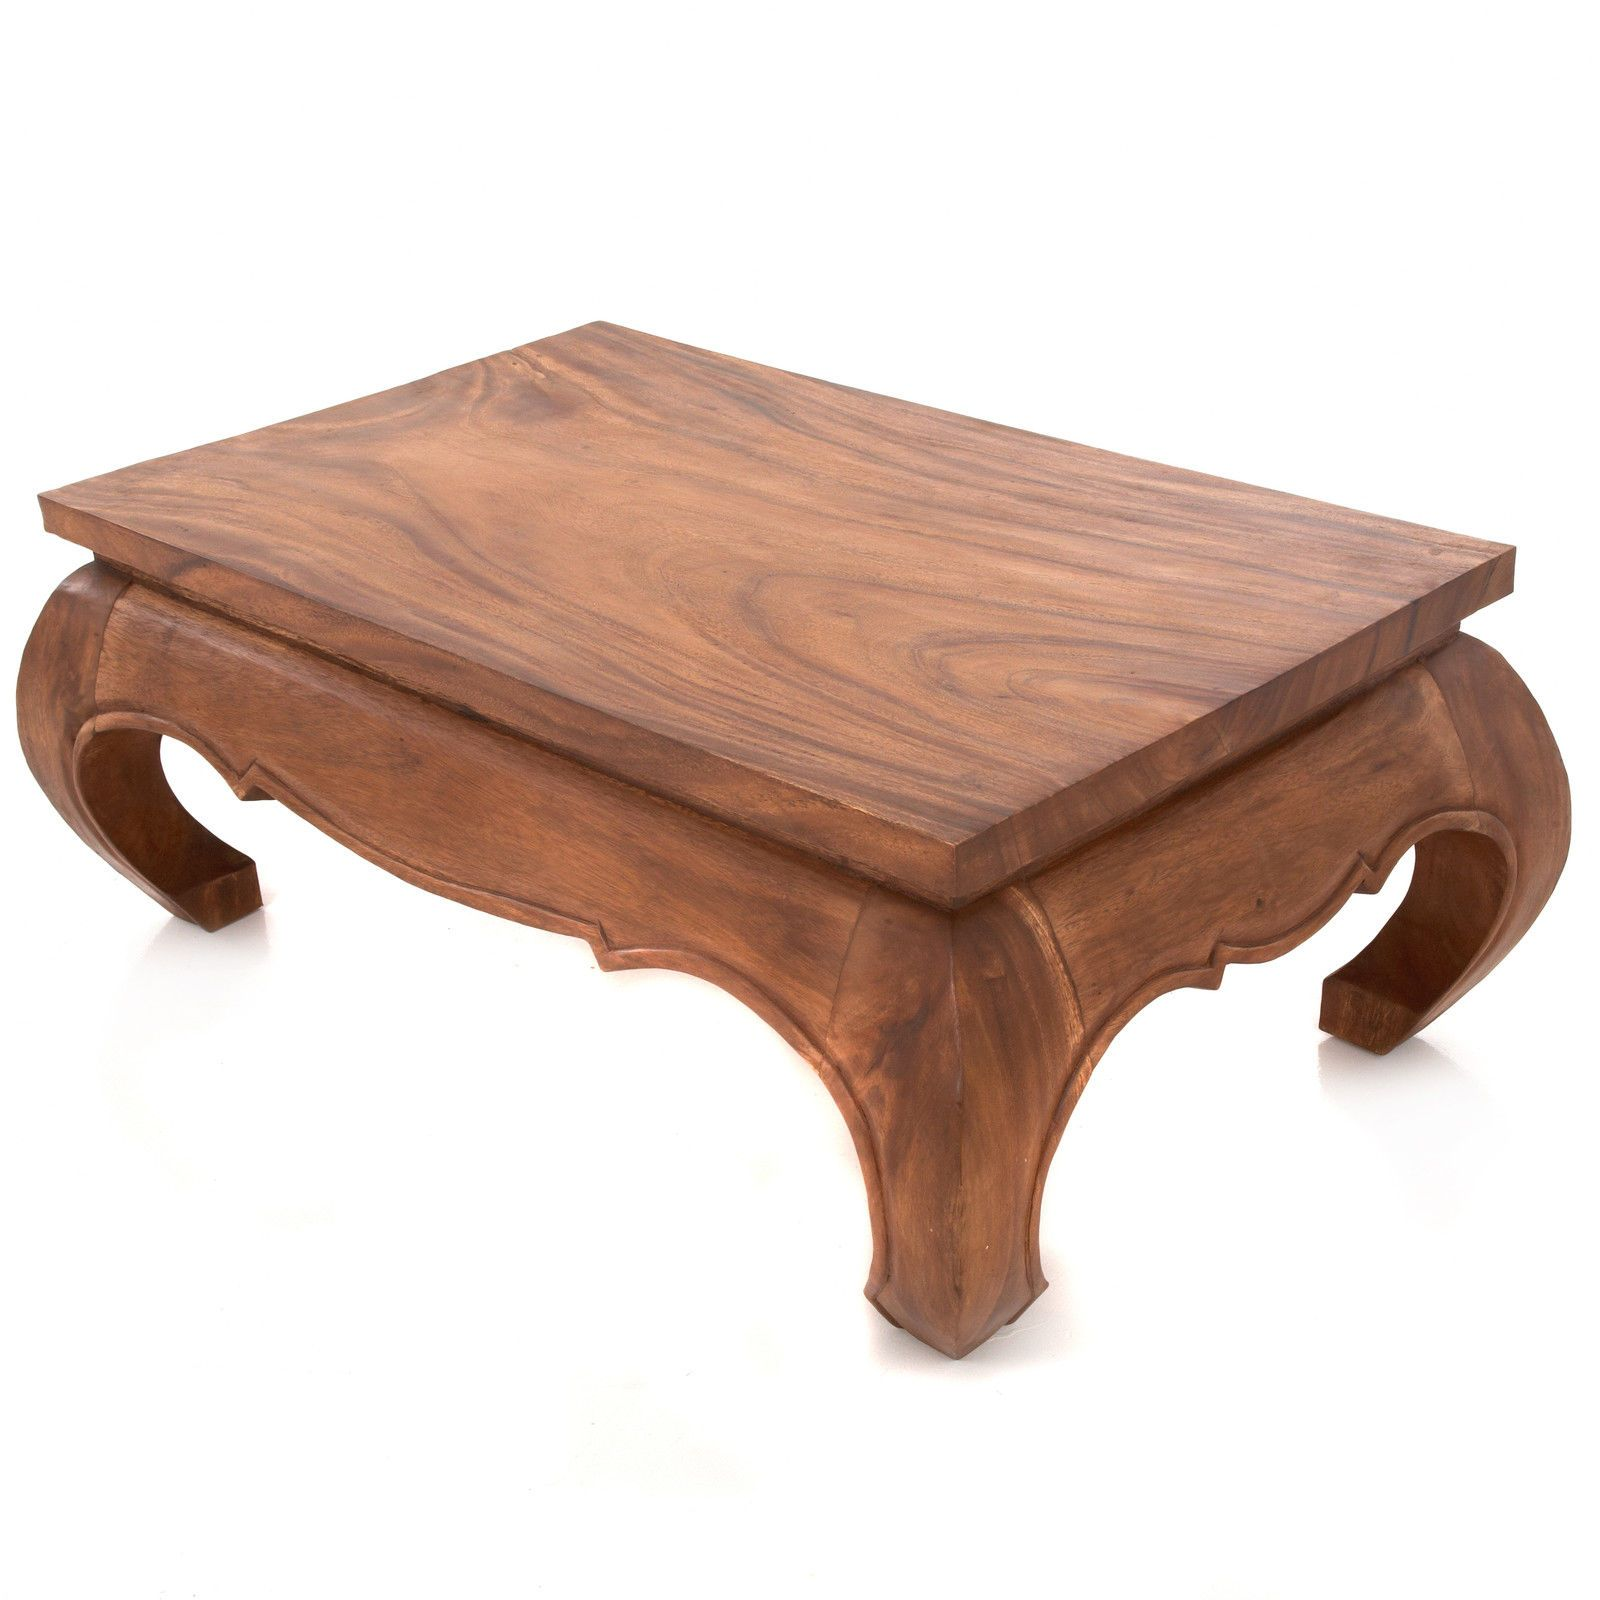 FAIR TRADE Wooden Opium Coffee Table FU 620 M eBay